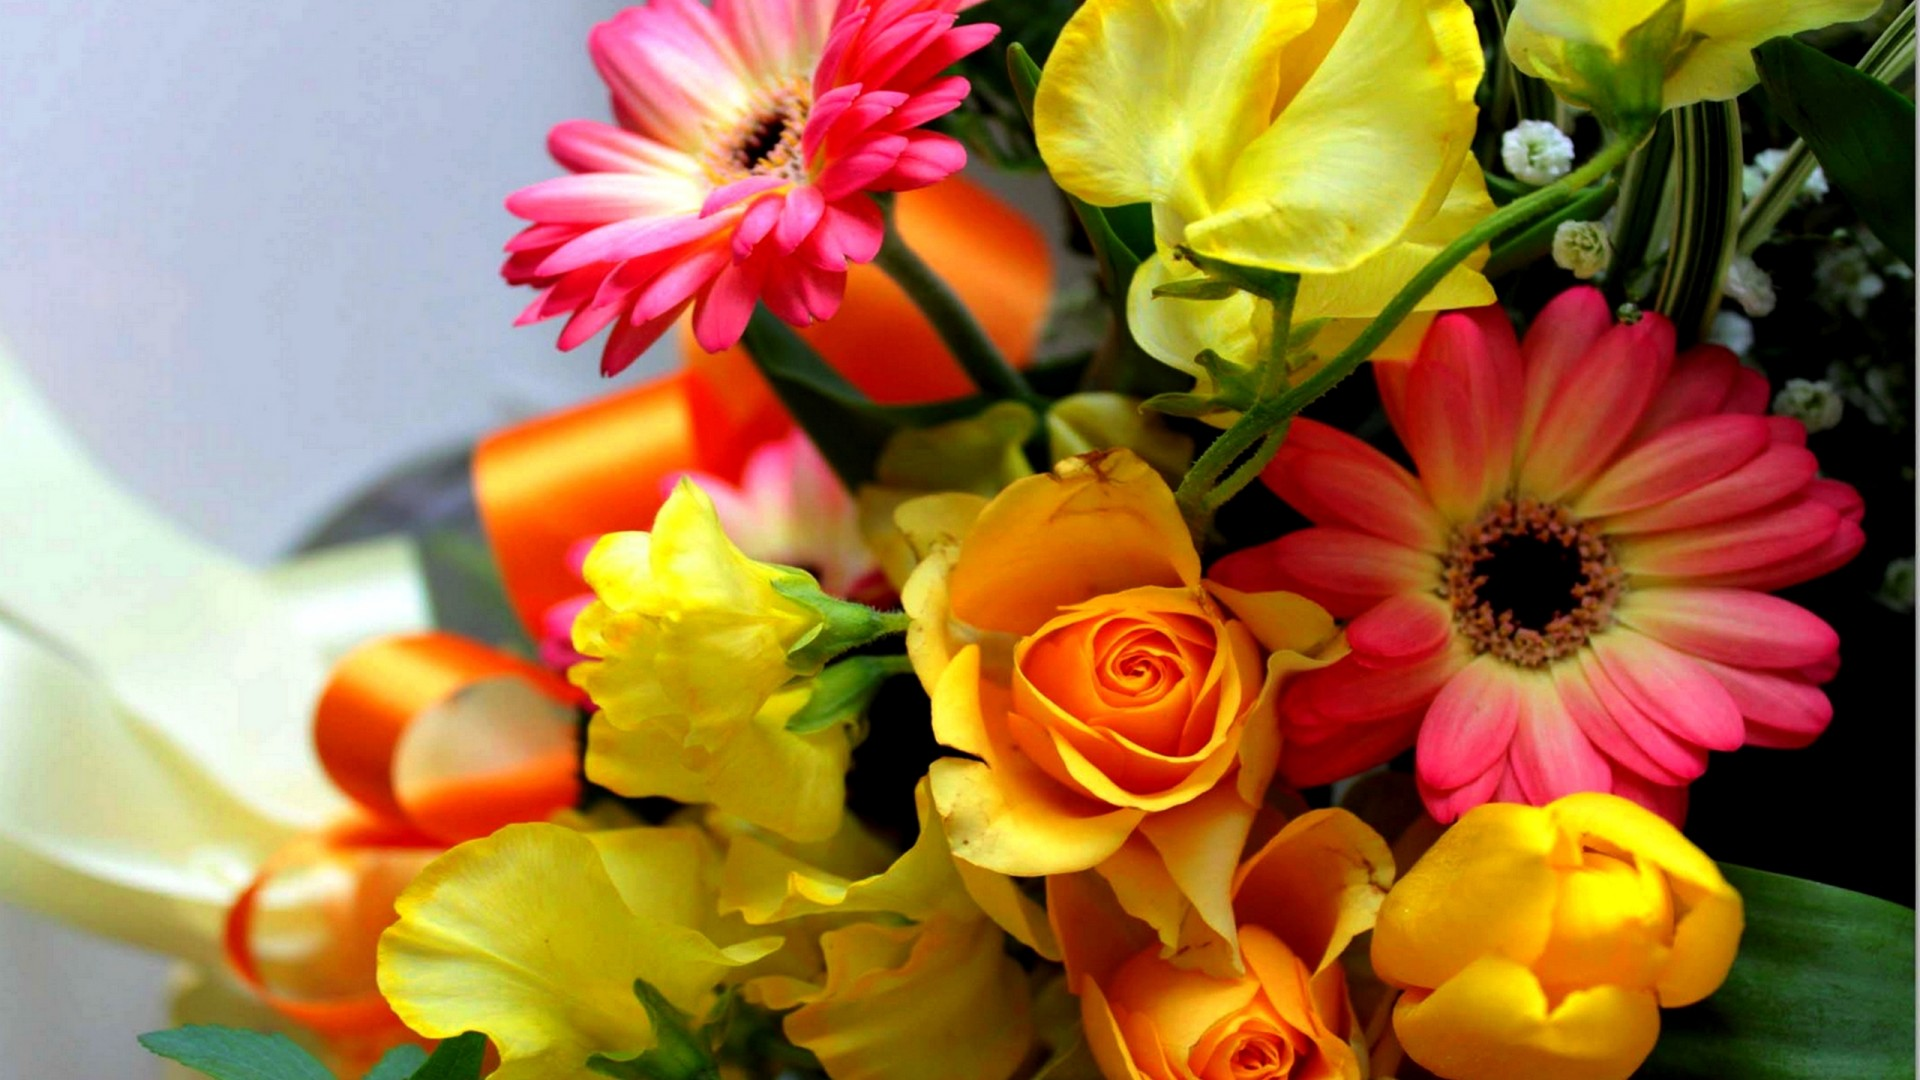 NEW! 15% OFF Summer Bouquet Collection – Arena Flowers Voucher Code